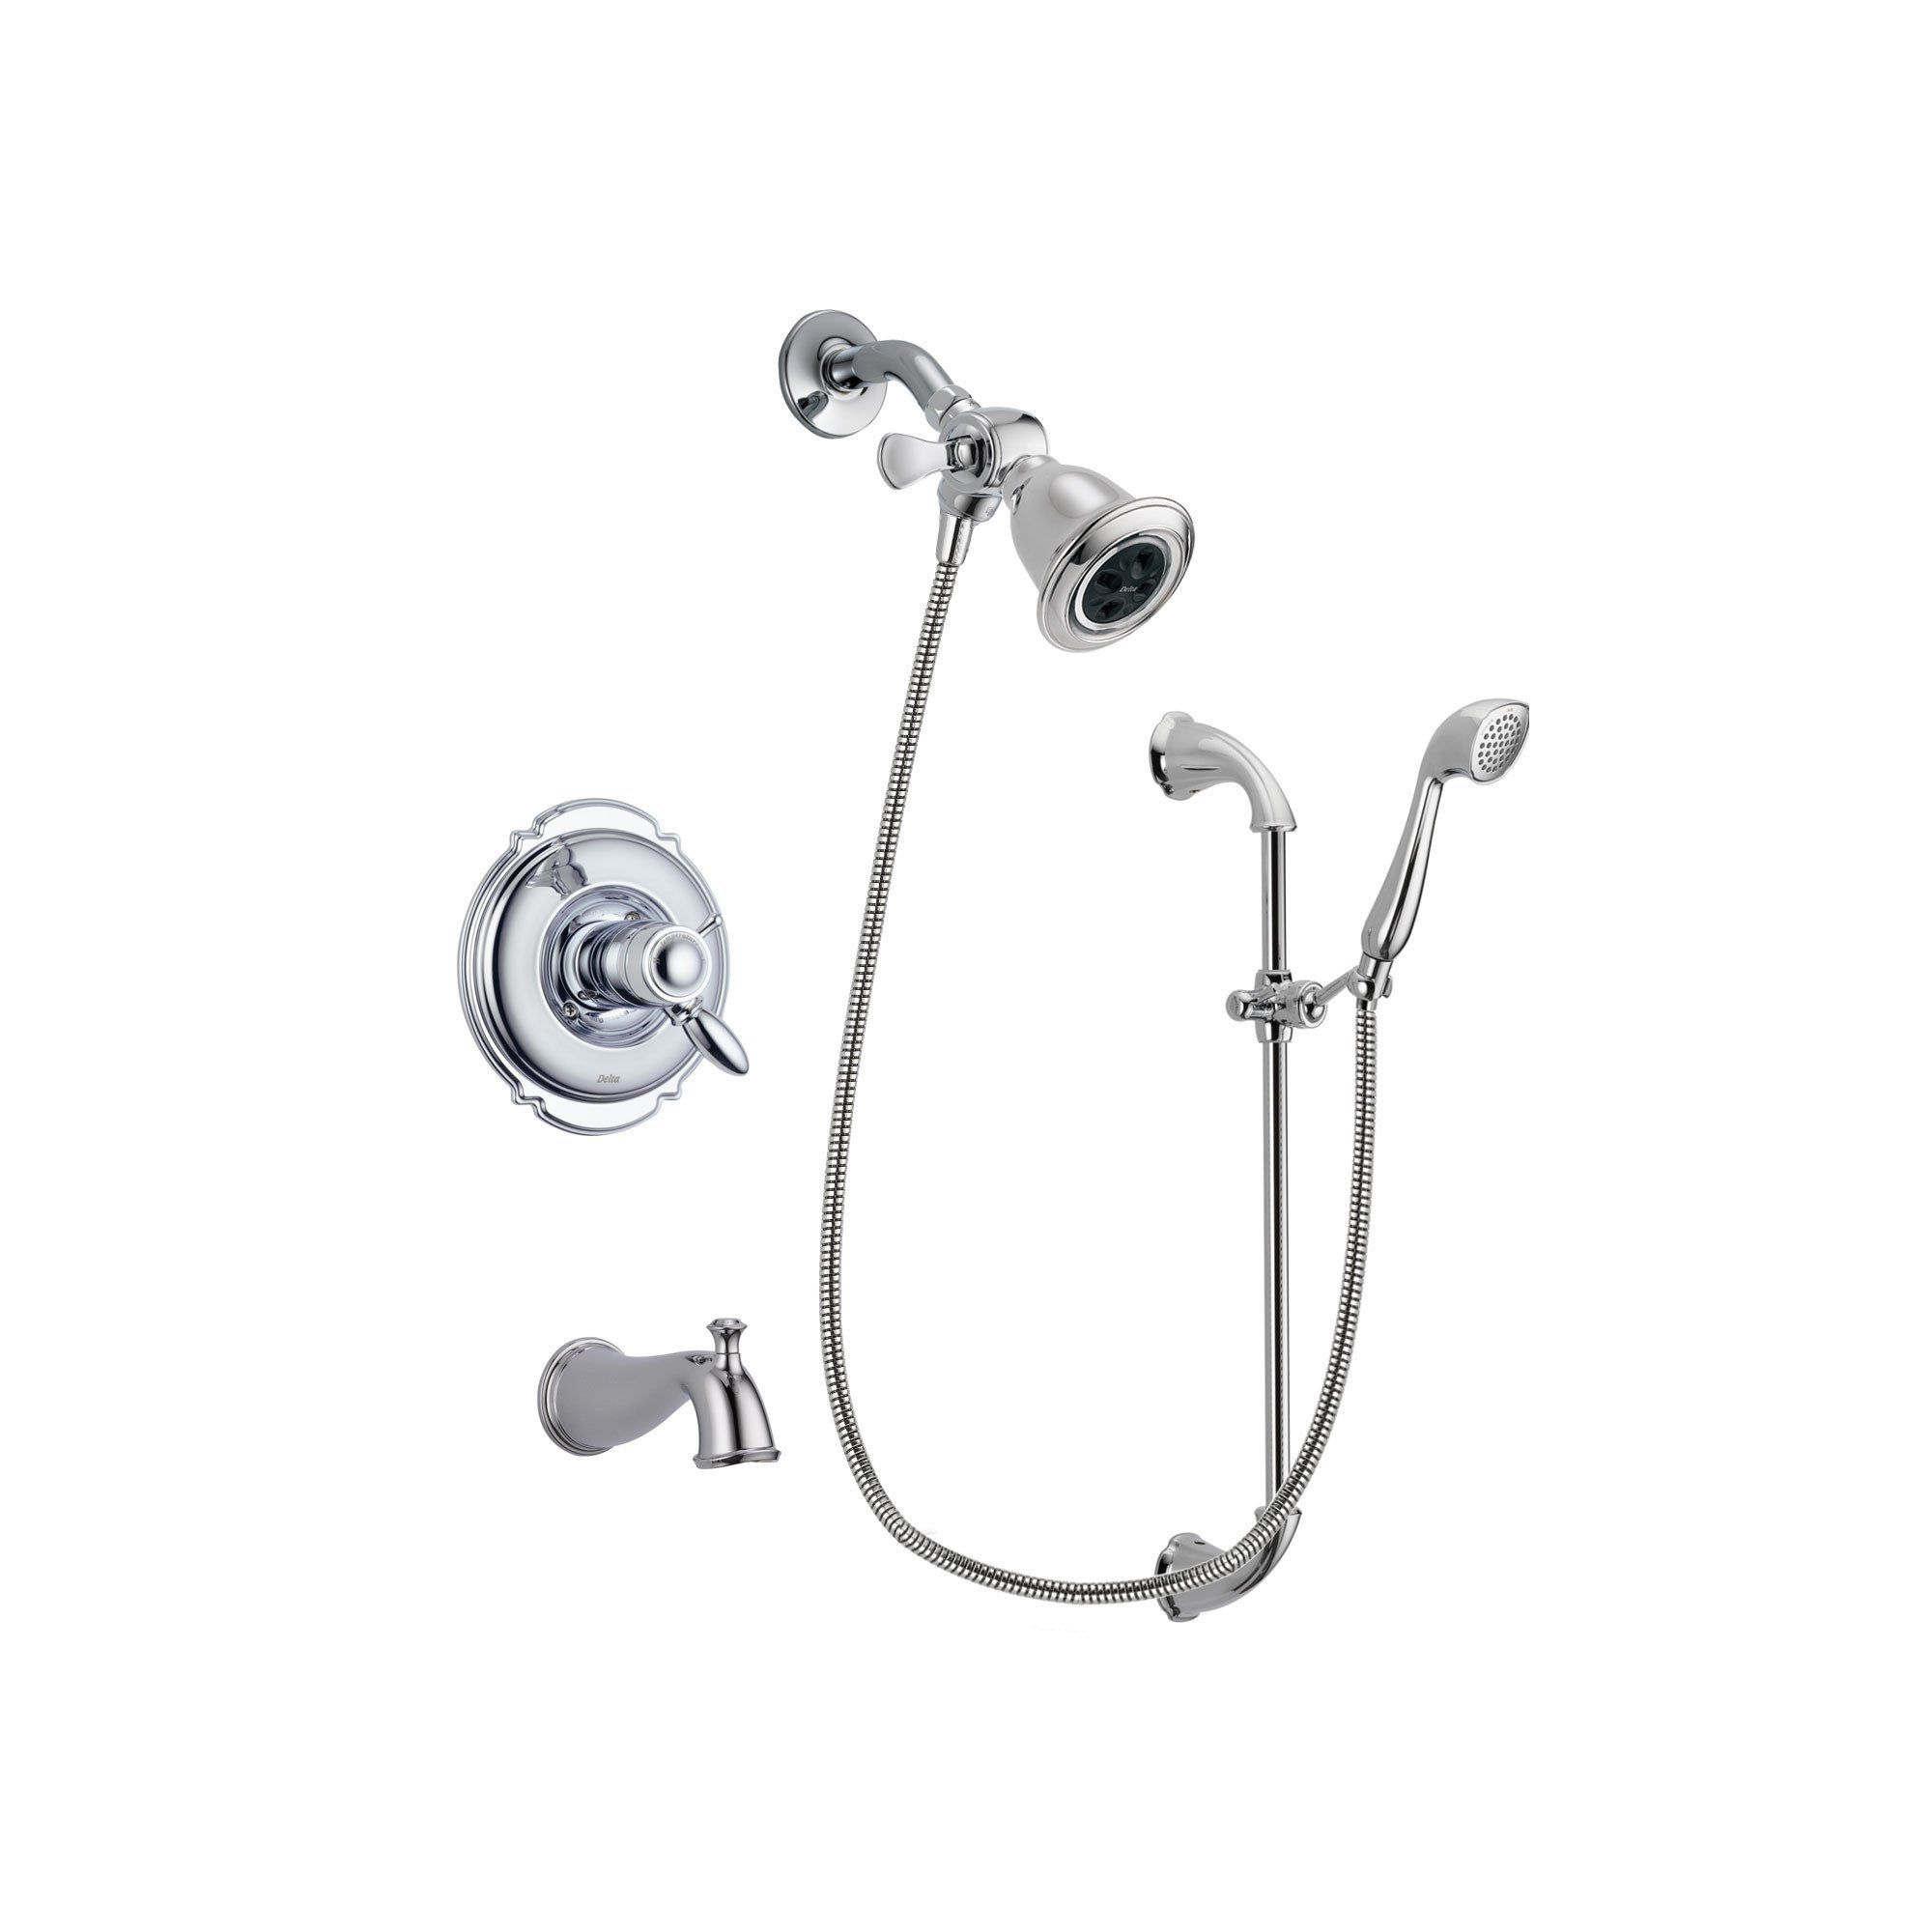 Best Of Slide Bar Hand Shower Systems